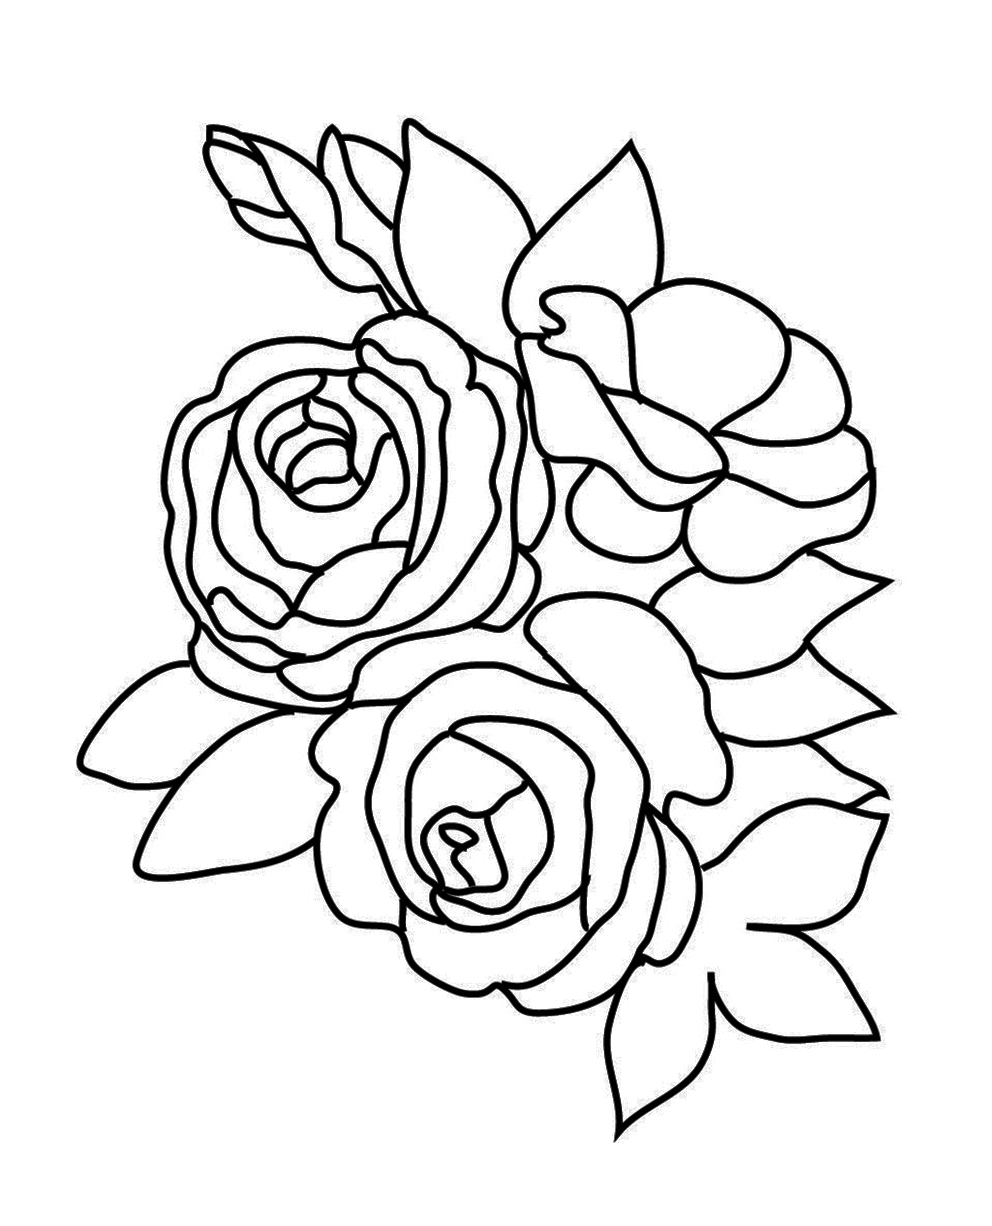 rose coloring page coloring pages of roses coloring home rose coloring page